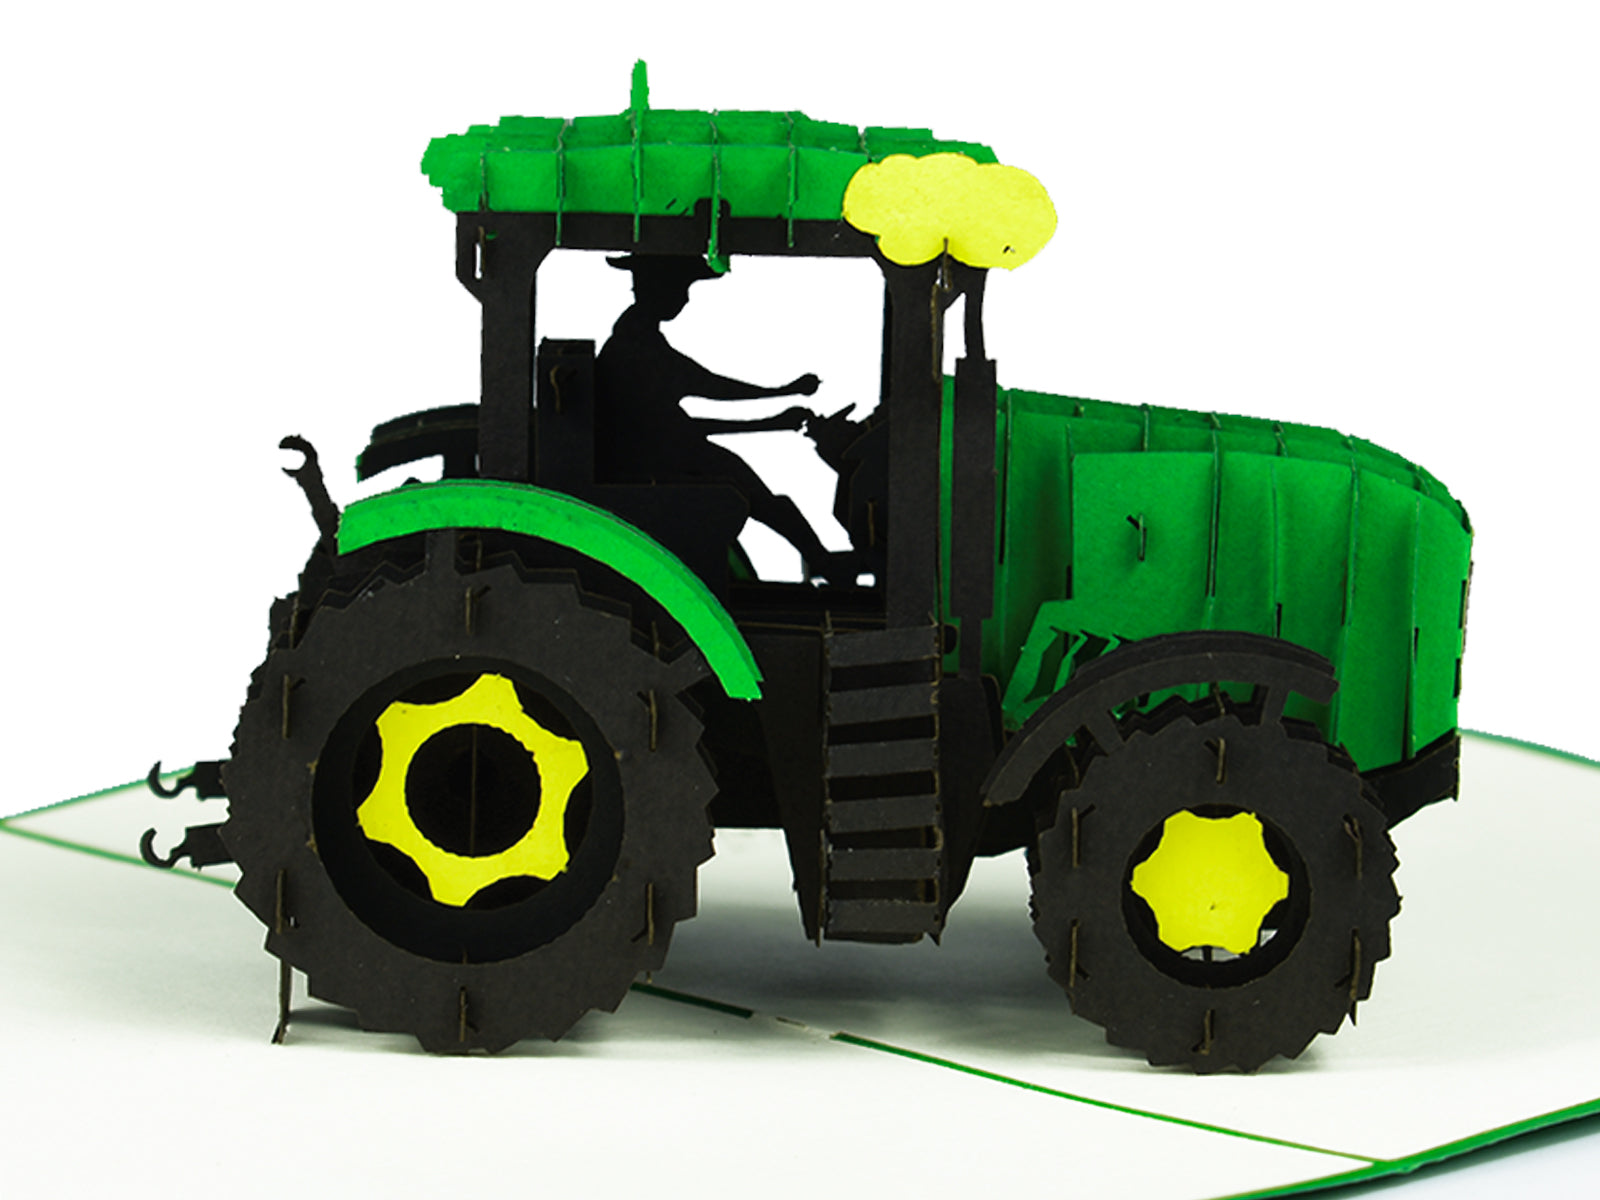 Modern Green Tractor 3D Creative Pop Up Card - close up